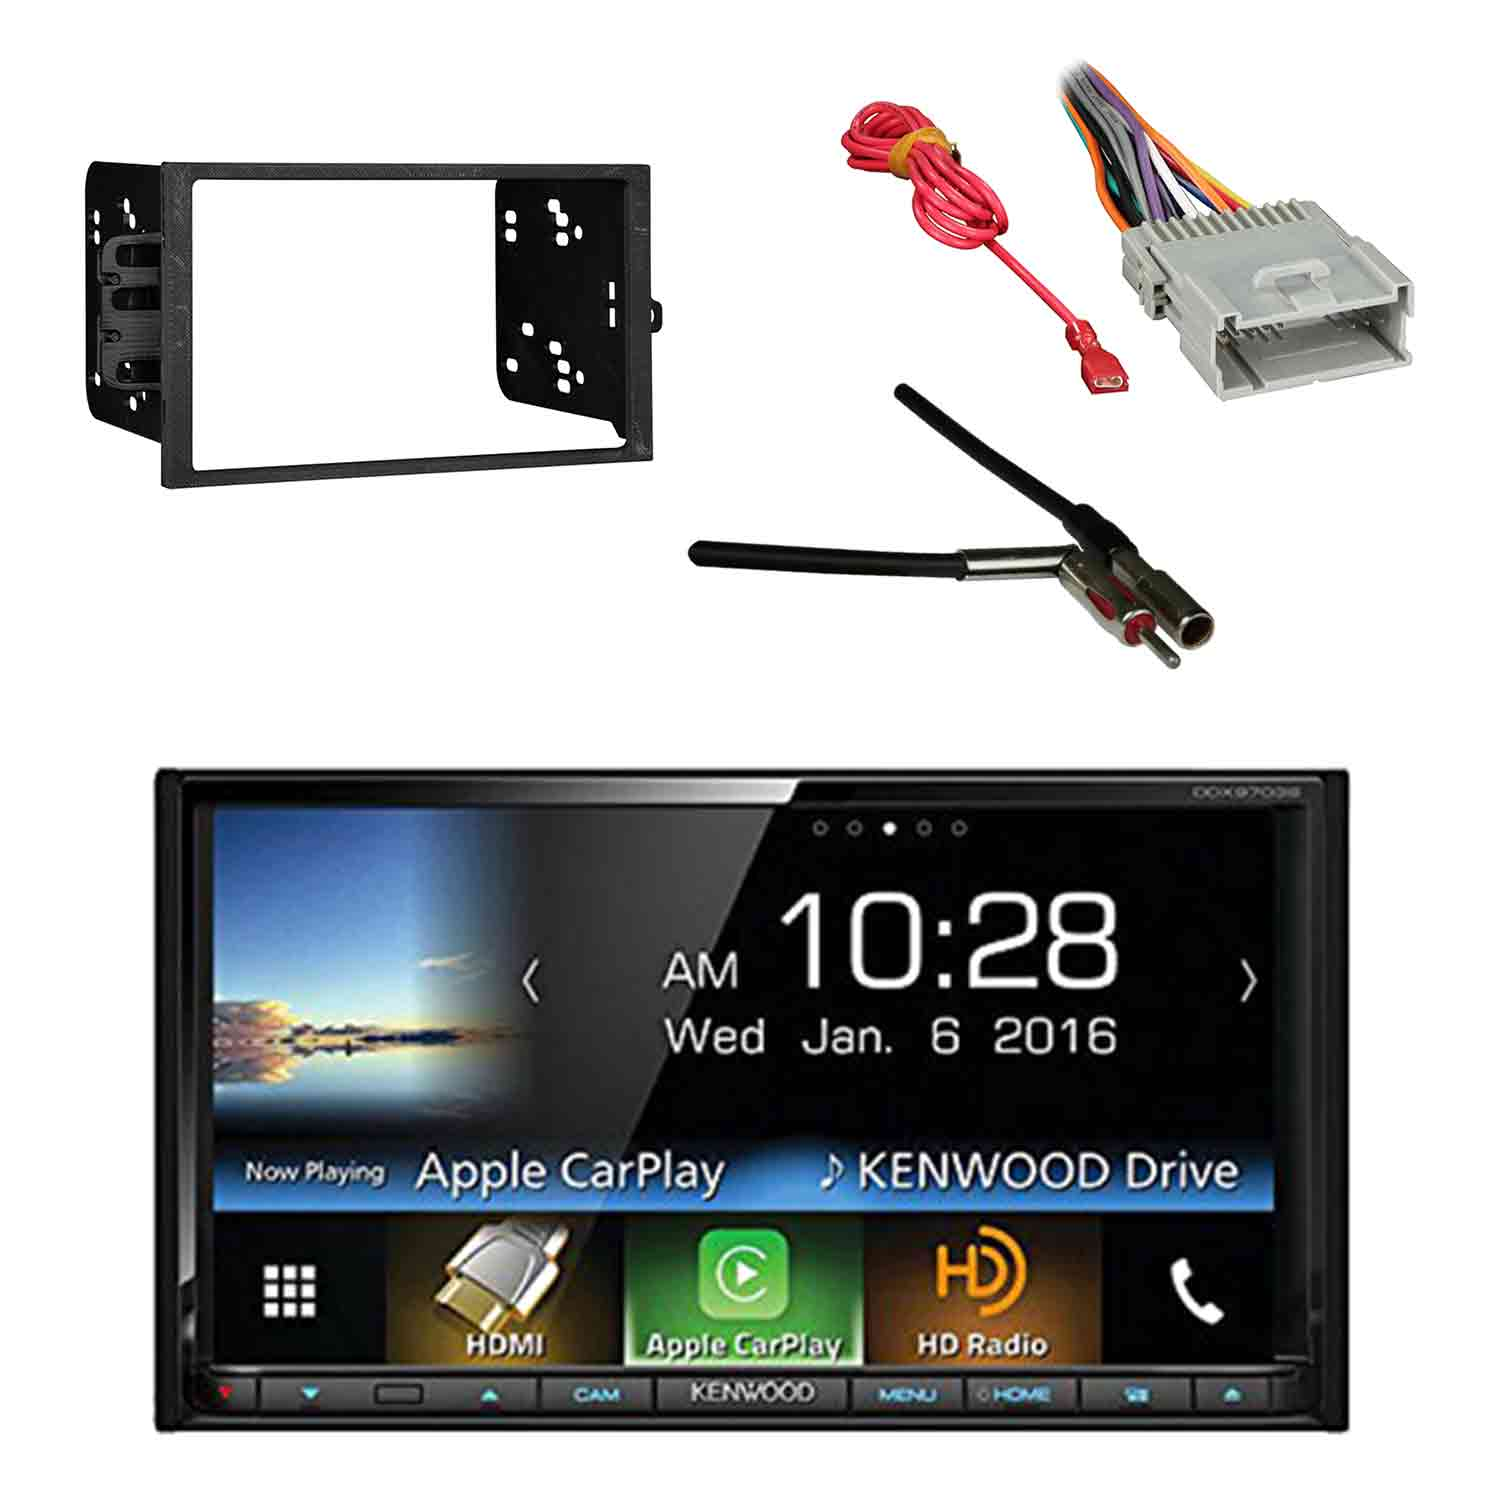 small resolution of  kenwood ddx9703s 2 din dvd cd am fm car stereo receiver with metra kenwood sub amp